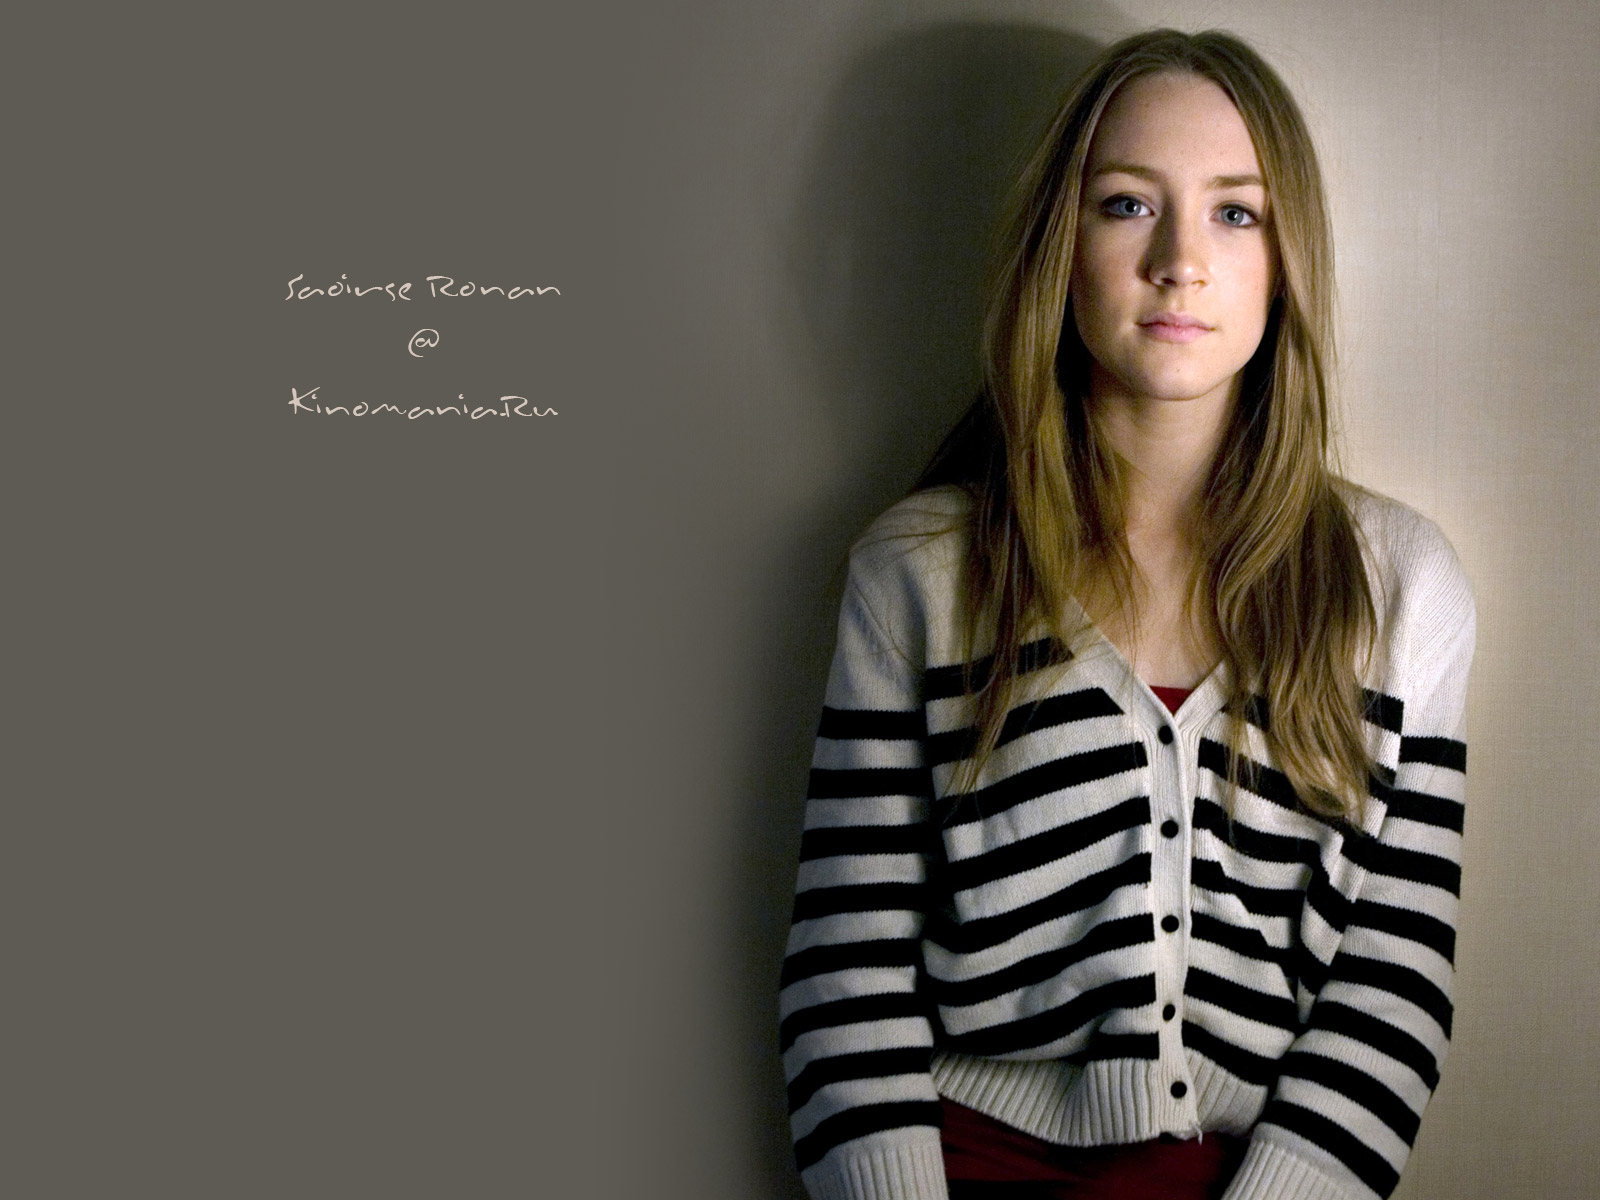 Saoirse Ronan hd New Nice Wallpapers 2012